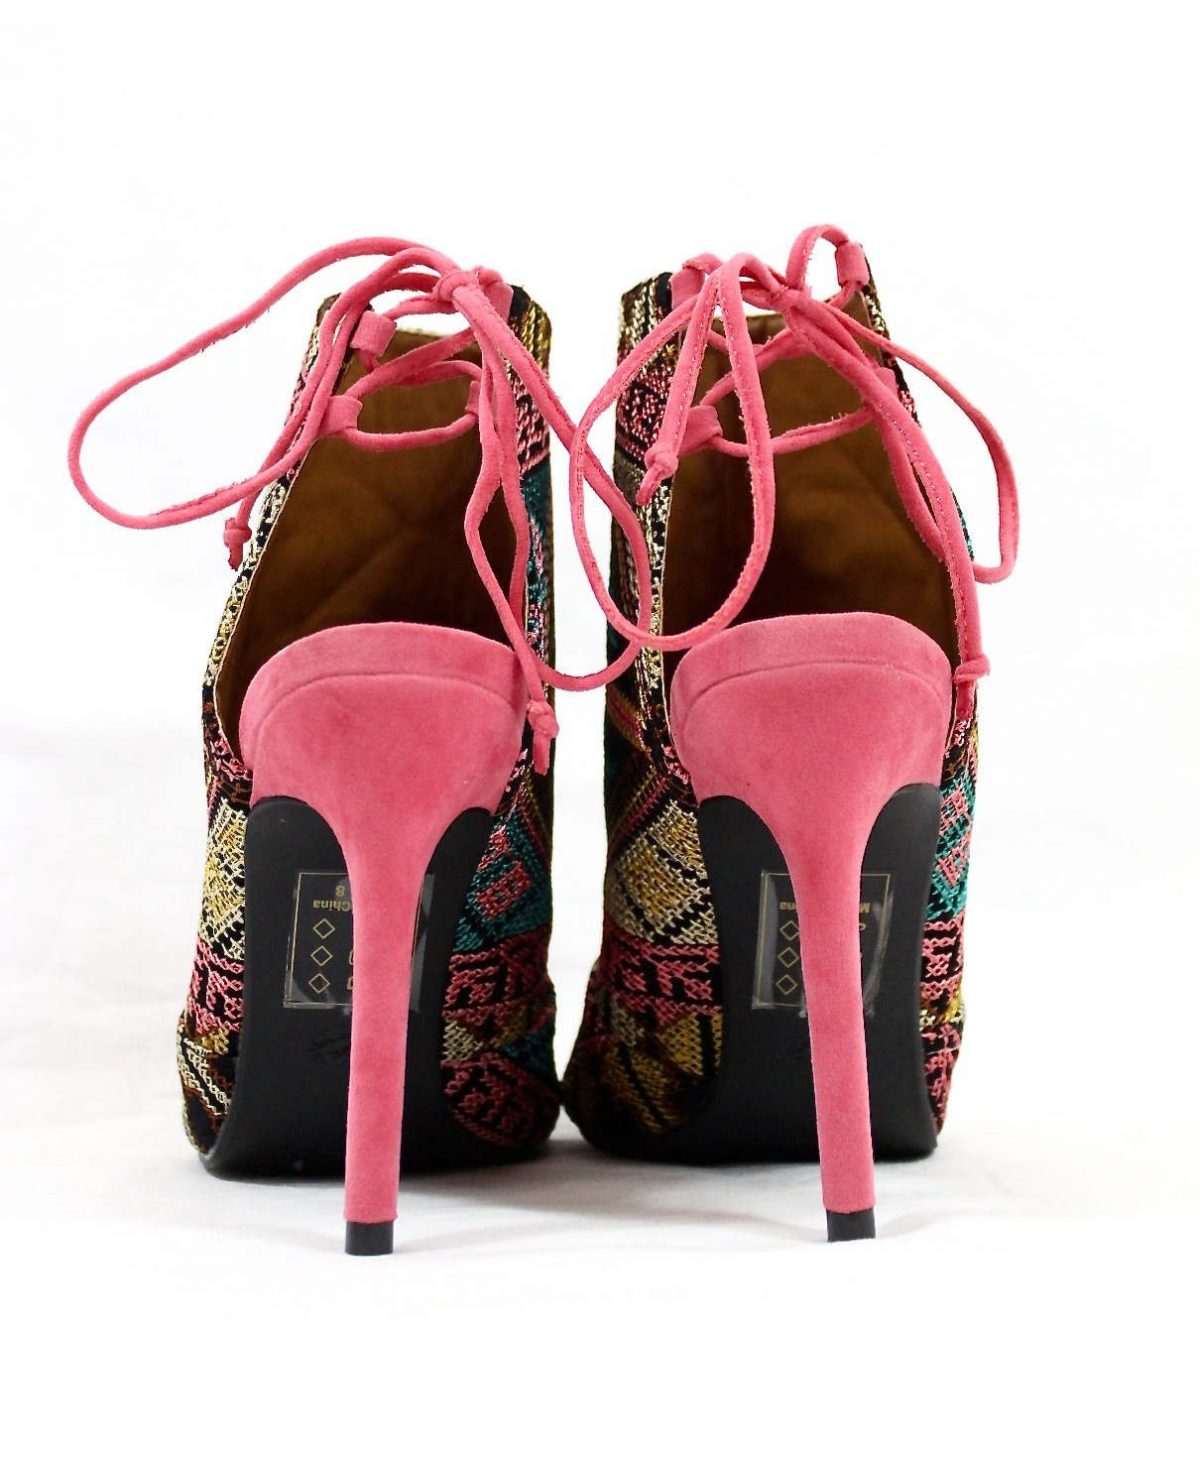 Shoe Republic Calista embroidered Stiletto Open Toe High Pink Booties-4758